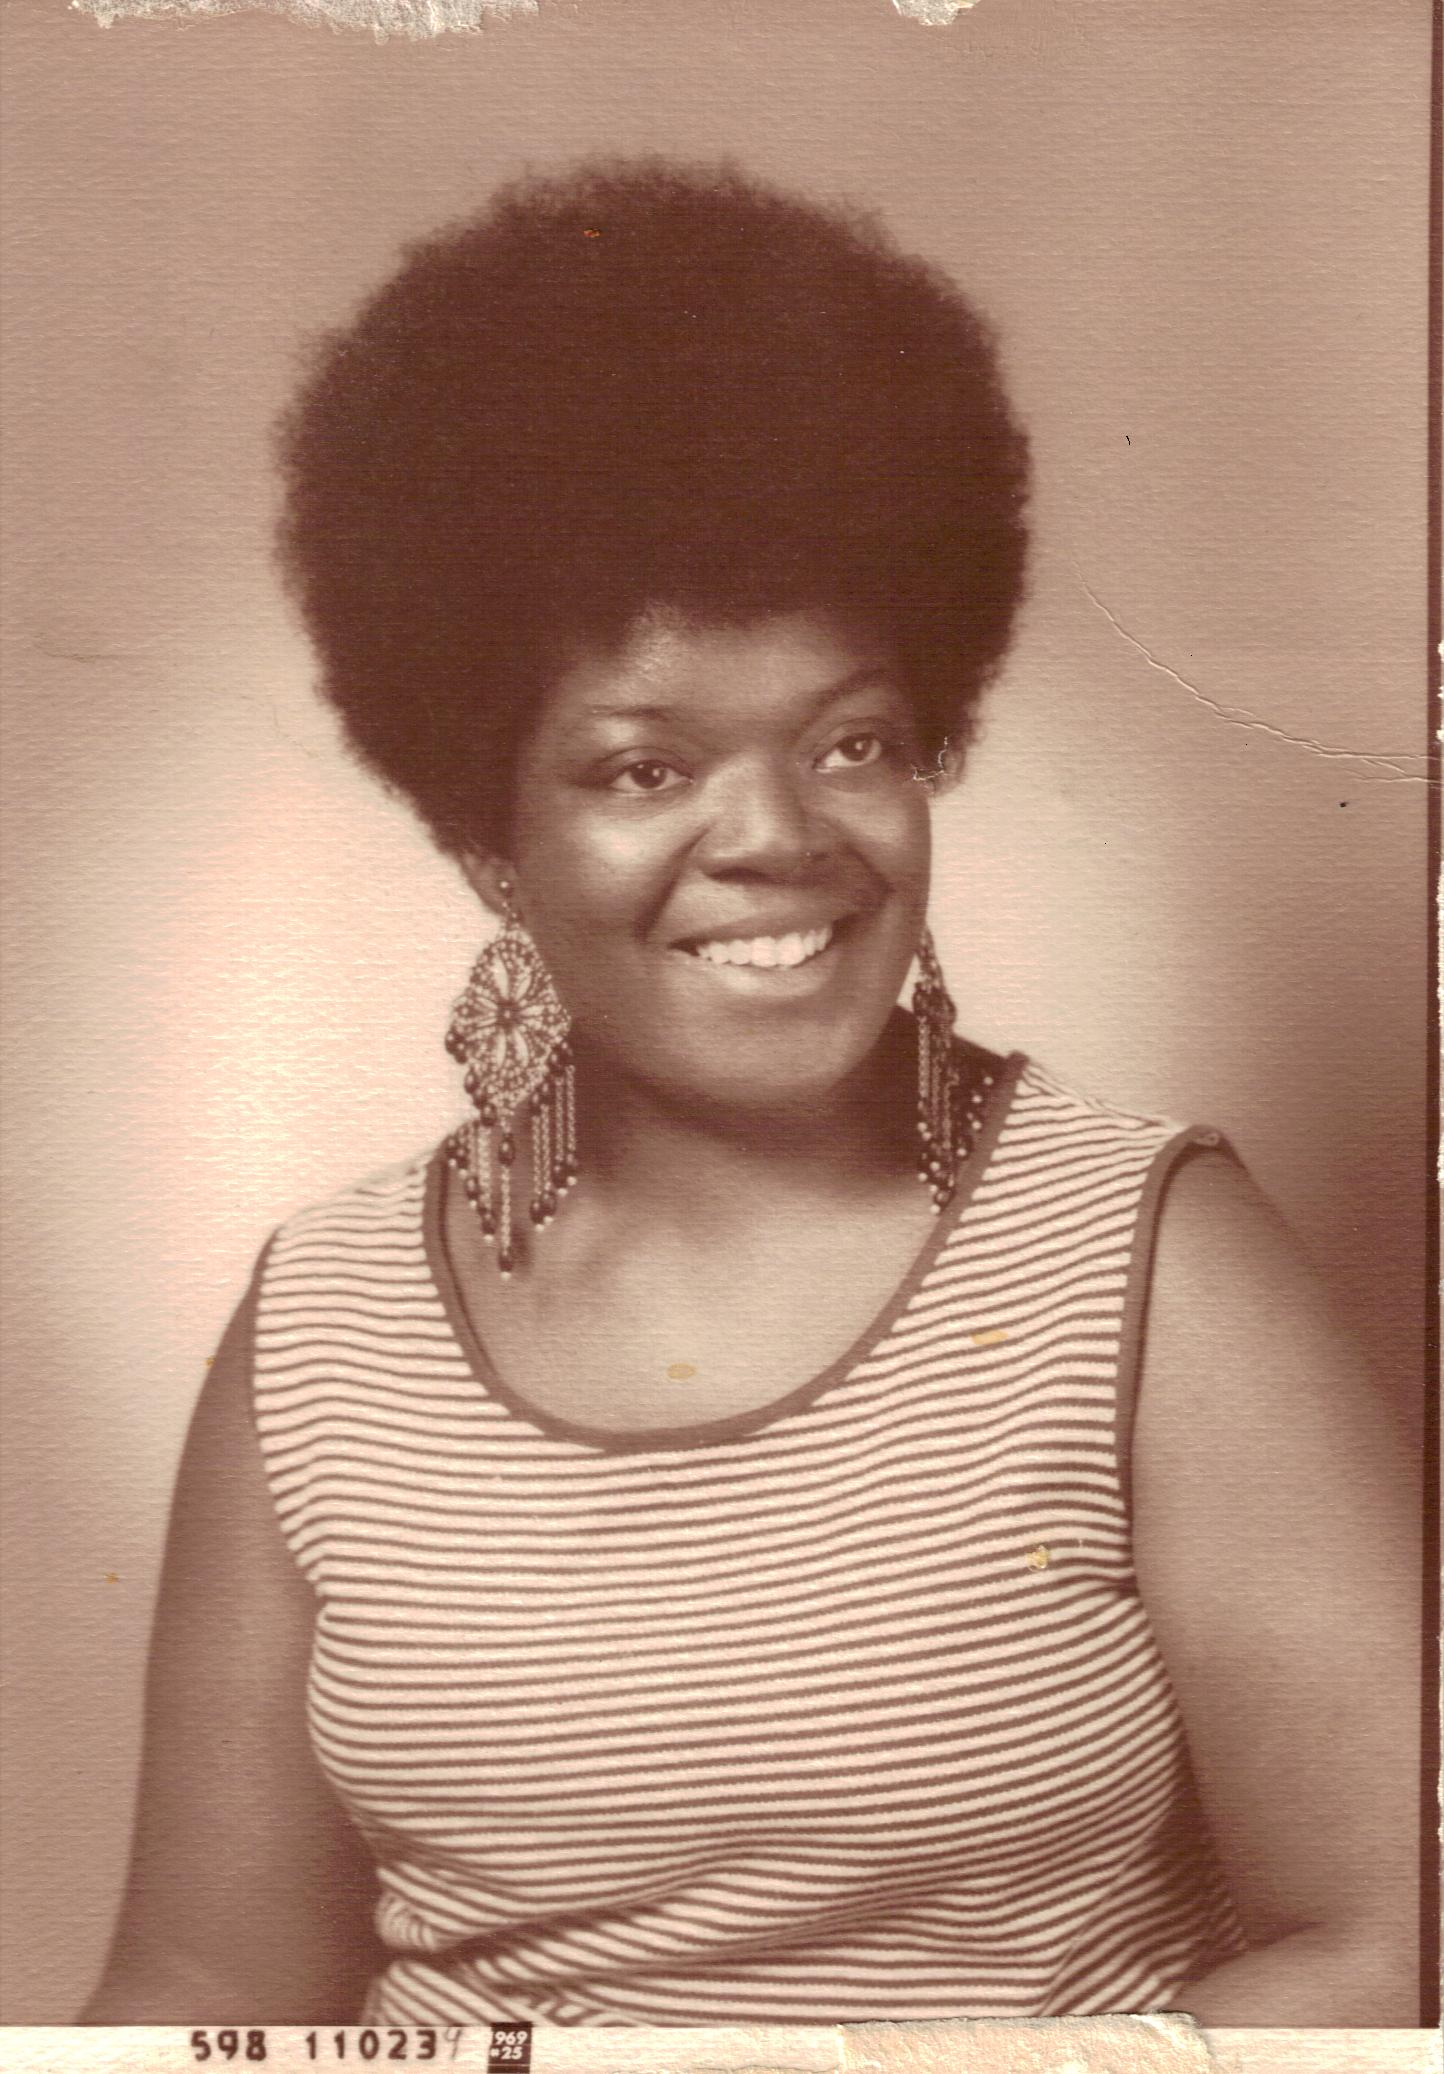 Margaret Brown's graduation photo from CCAC c. 1969. Courtesy of Margaret Brown.